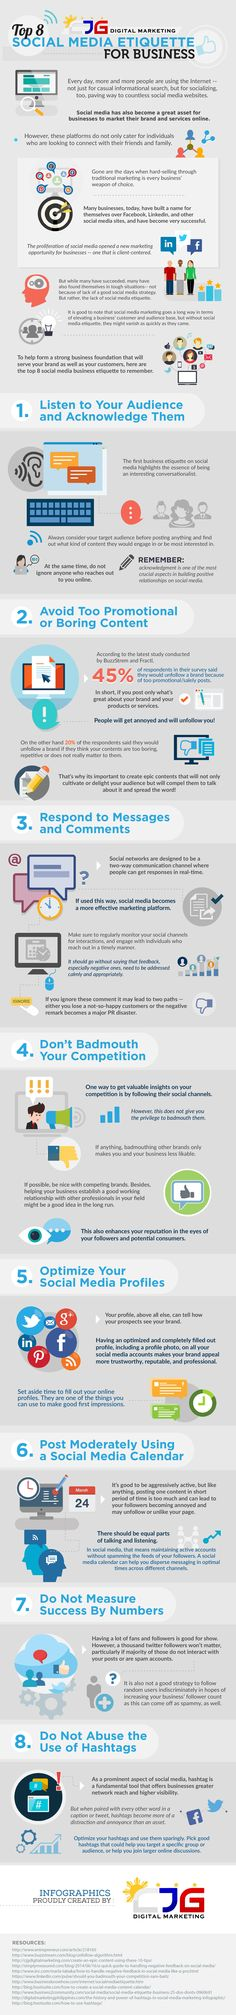 Top-8-Social-Media-Etiquette-For-Business